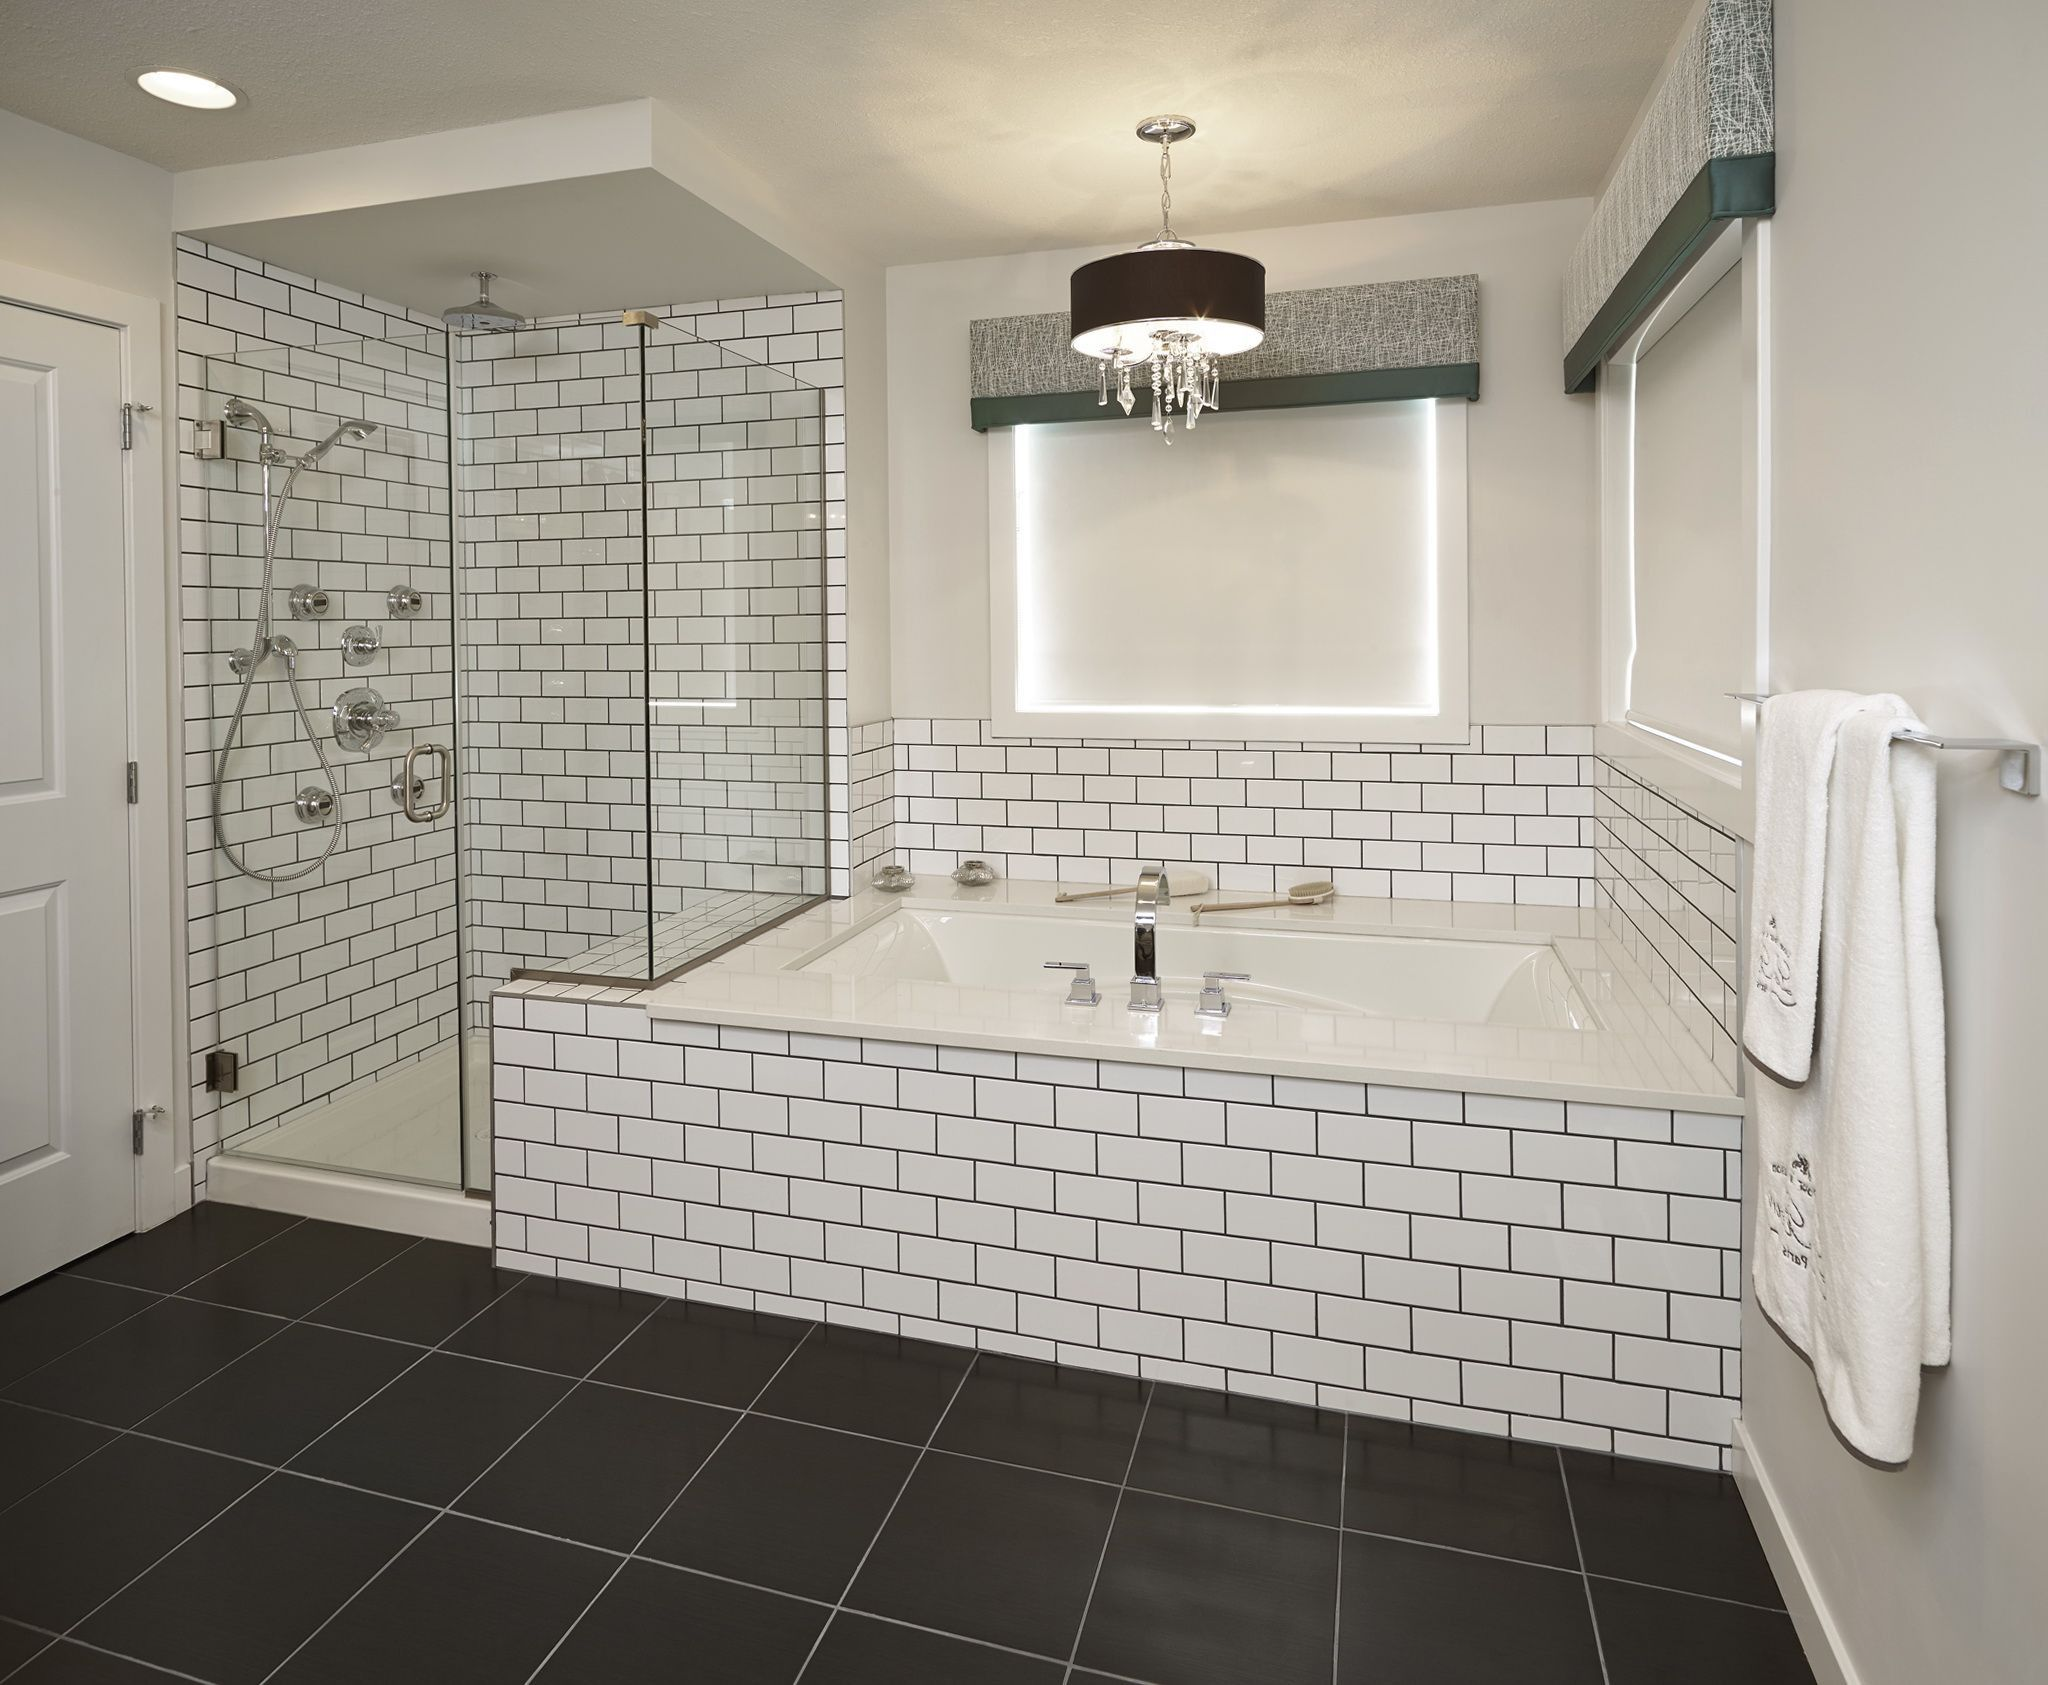 Bathrooms With White Subway Tile Best Of Subway Tile Bathroom Black Grout Bathrooms Pi White Subway Tile Shower White Bathroom Tiles White Subway Tile Bathroom